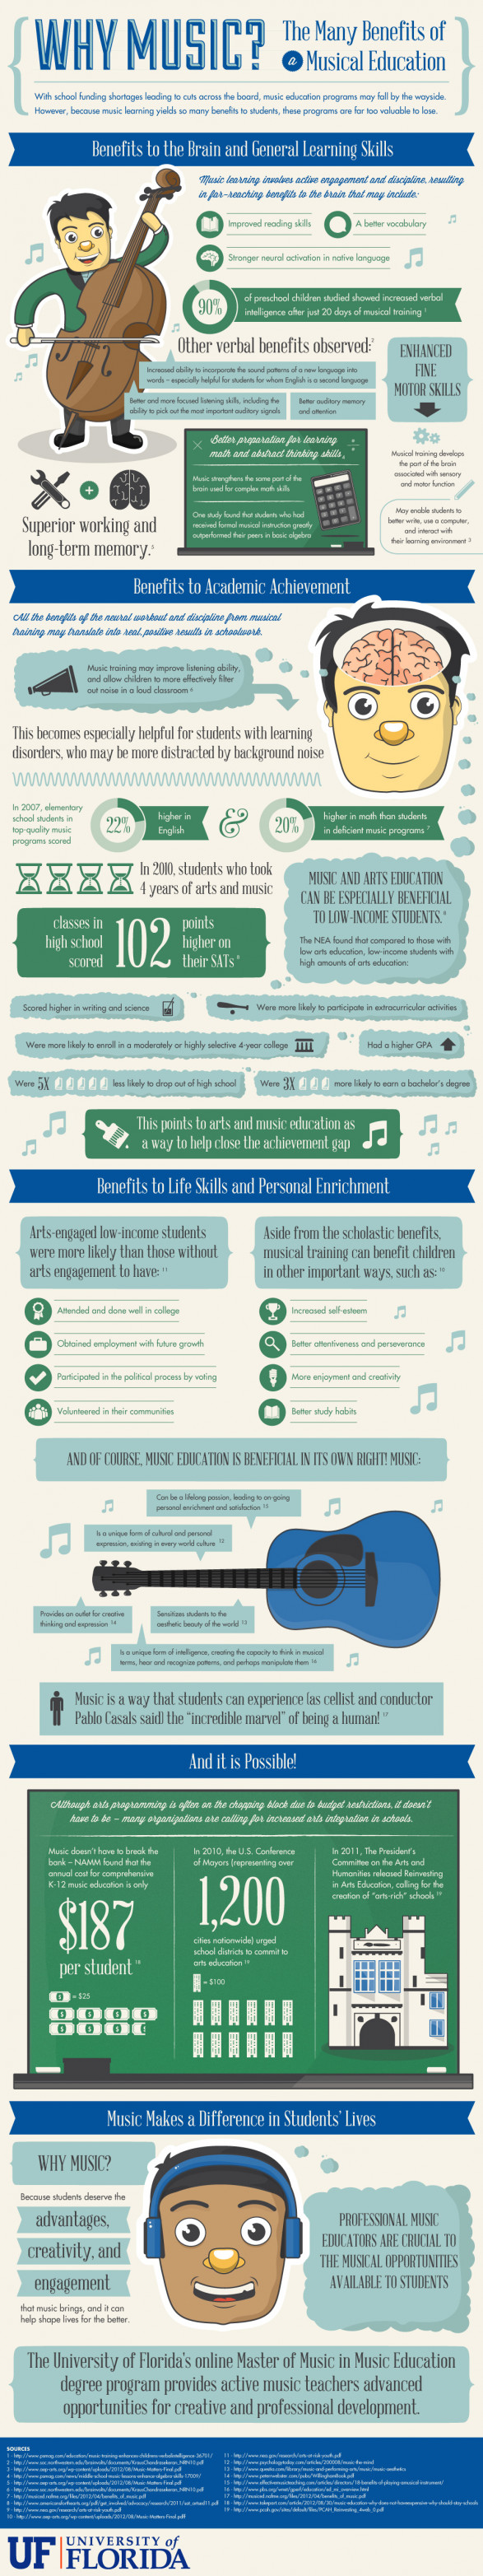 Why Music? The Many Benefits of Musical Education